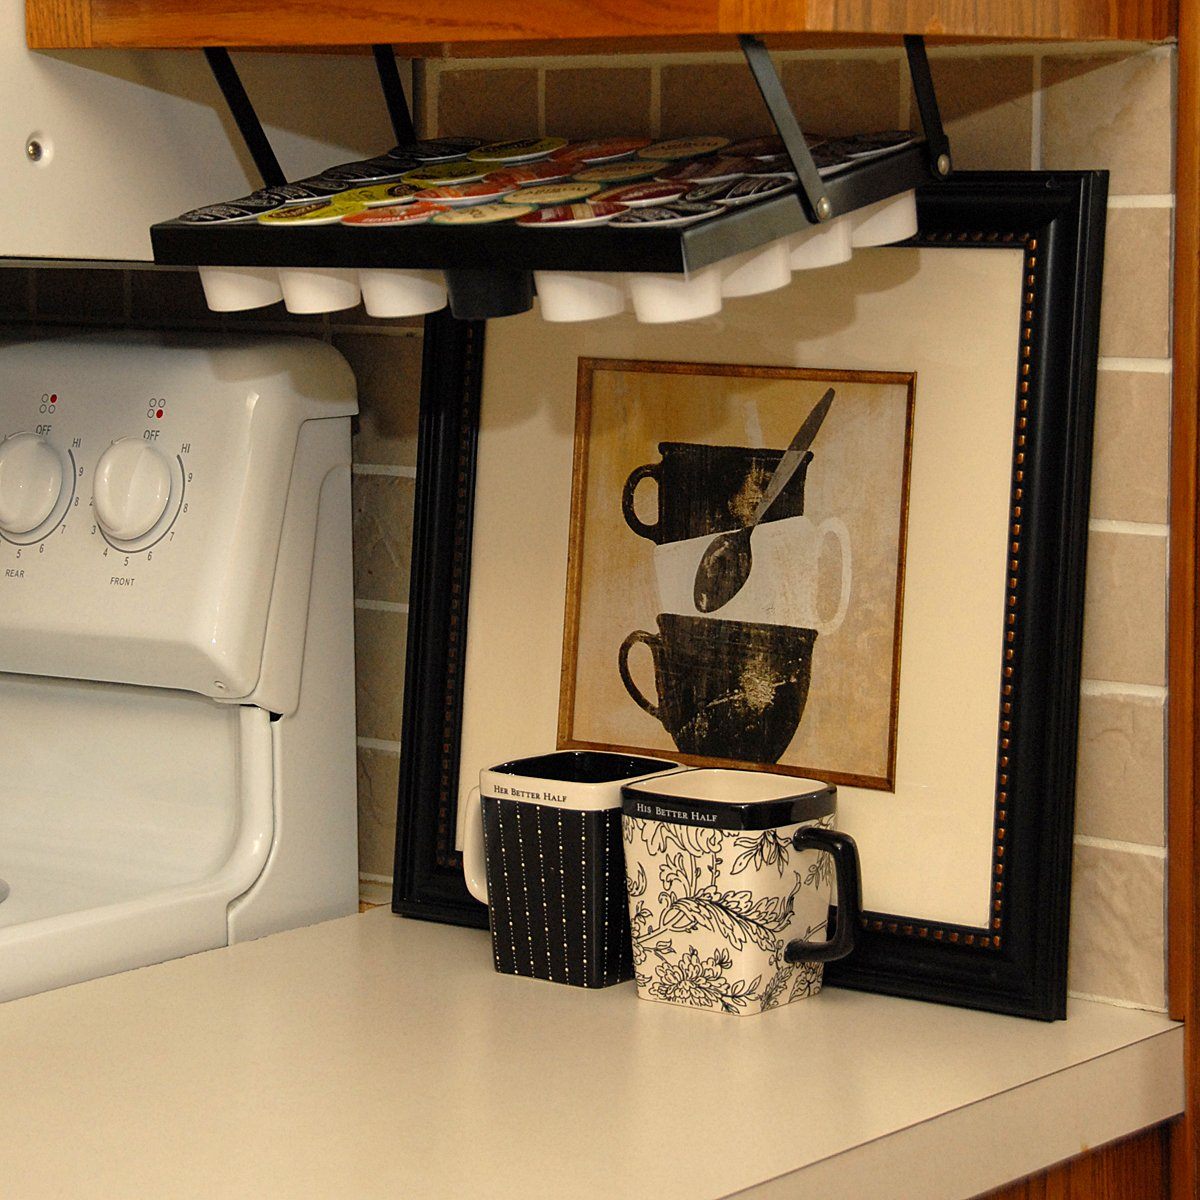 Amazon.com: Coffee Keepers Under Cabinet K-Cup Holder ...